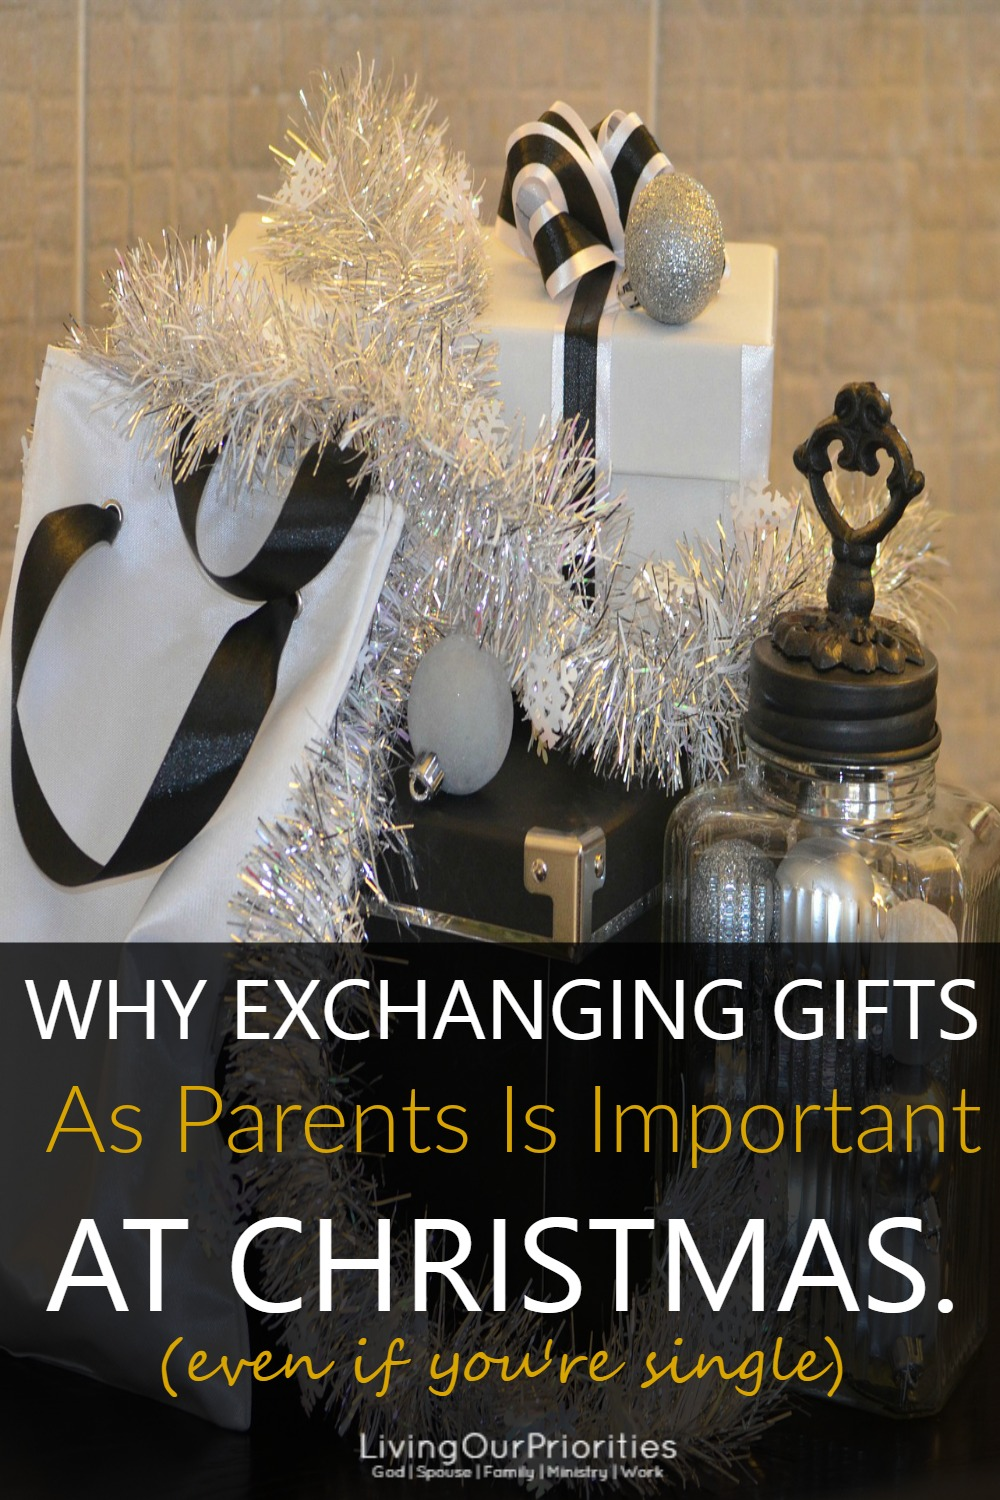 Why Exchanging Gifts As Parents Is Important At Christmas -